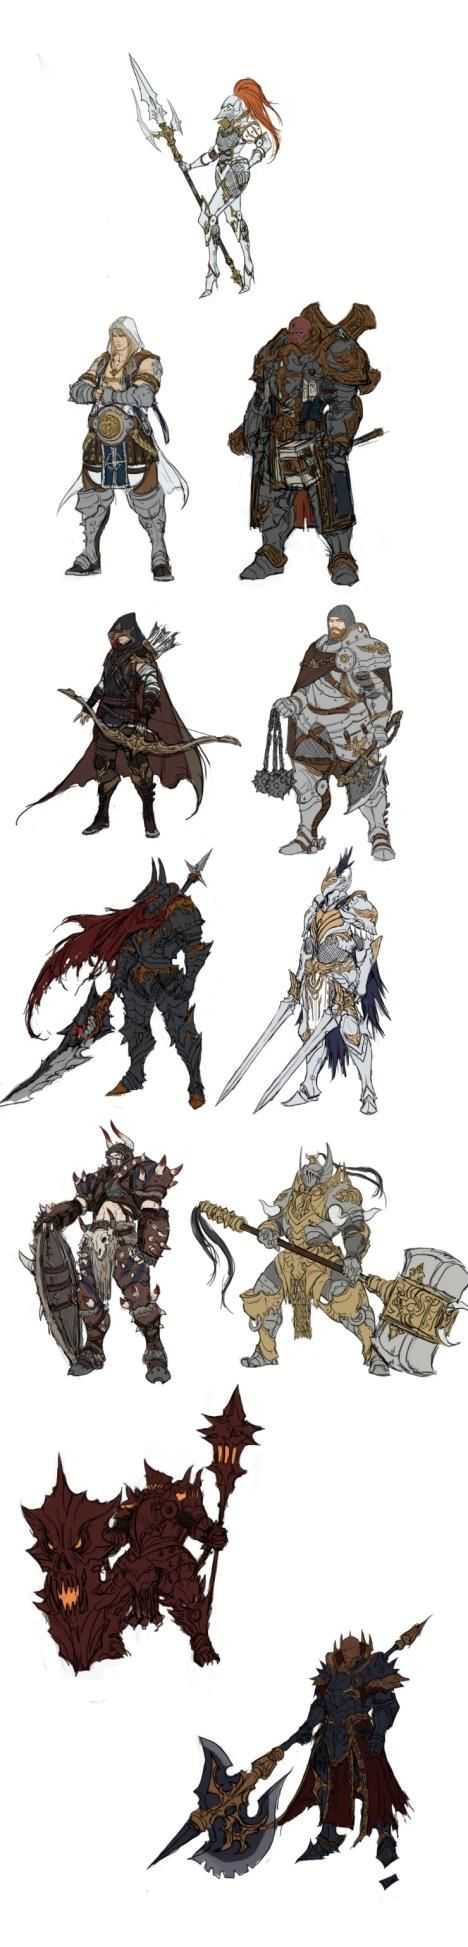 Im going to assume that the single woman character is the one wearing heels on her armor. for... some reason